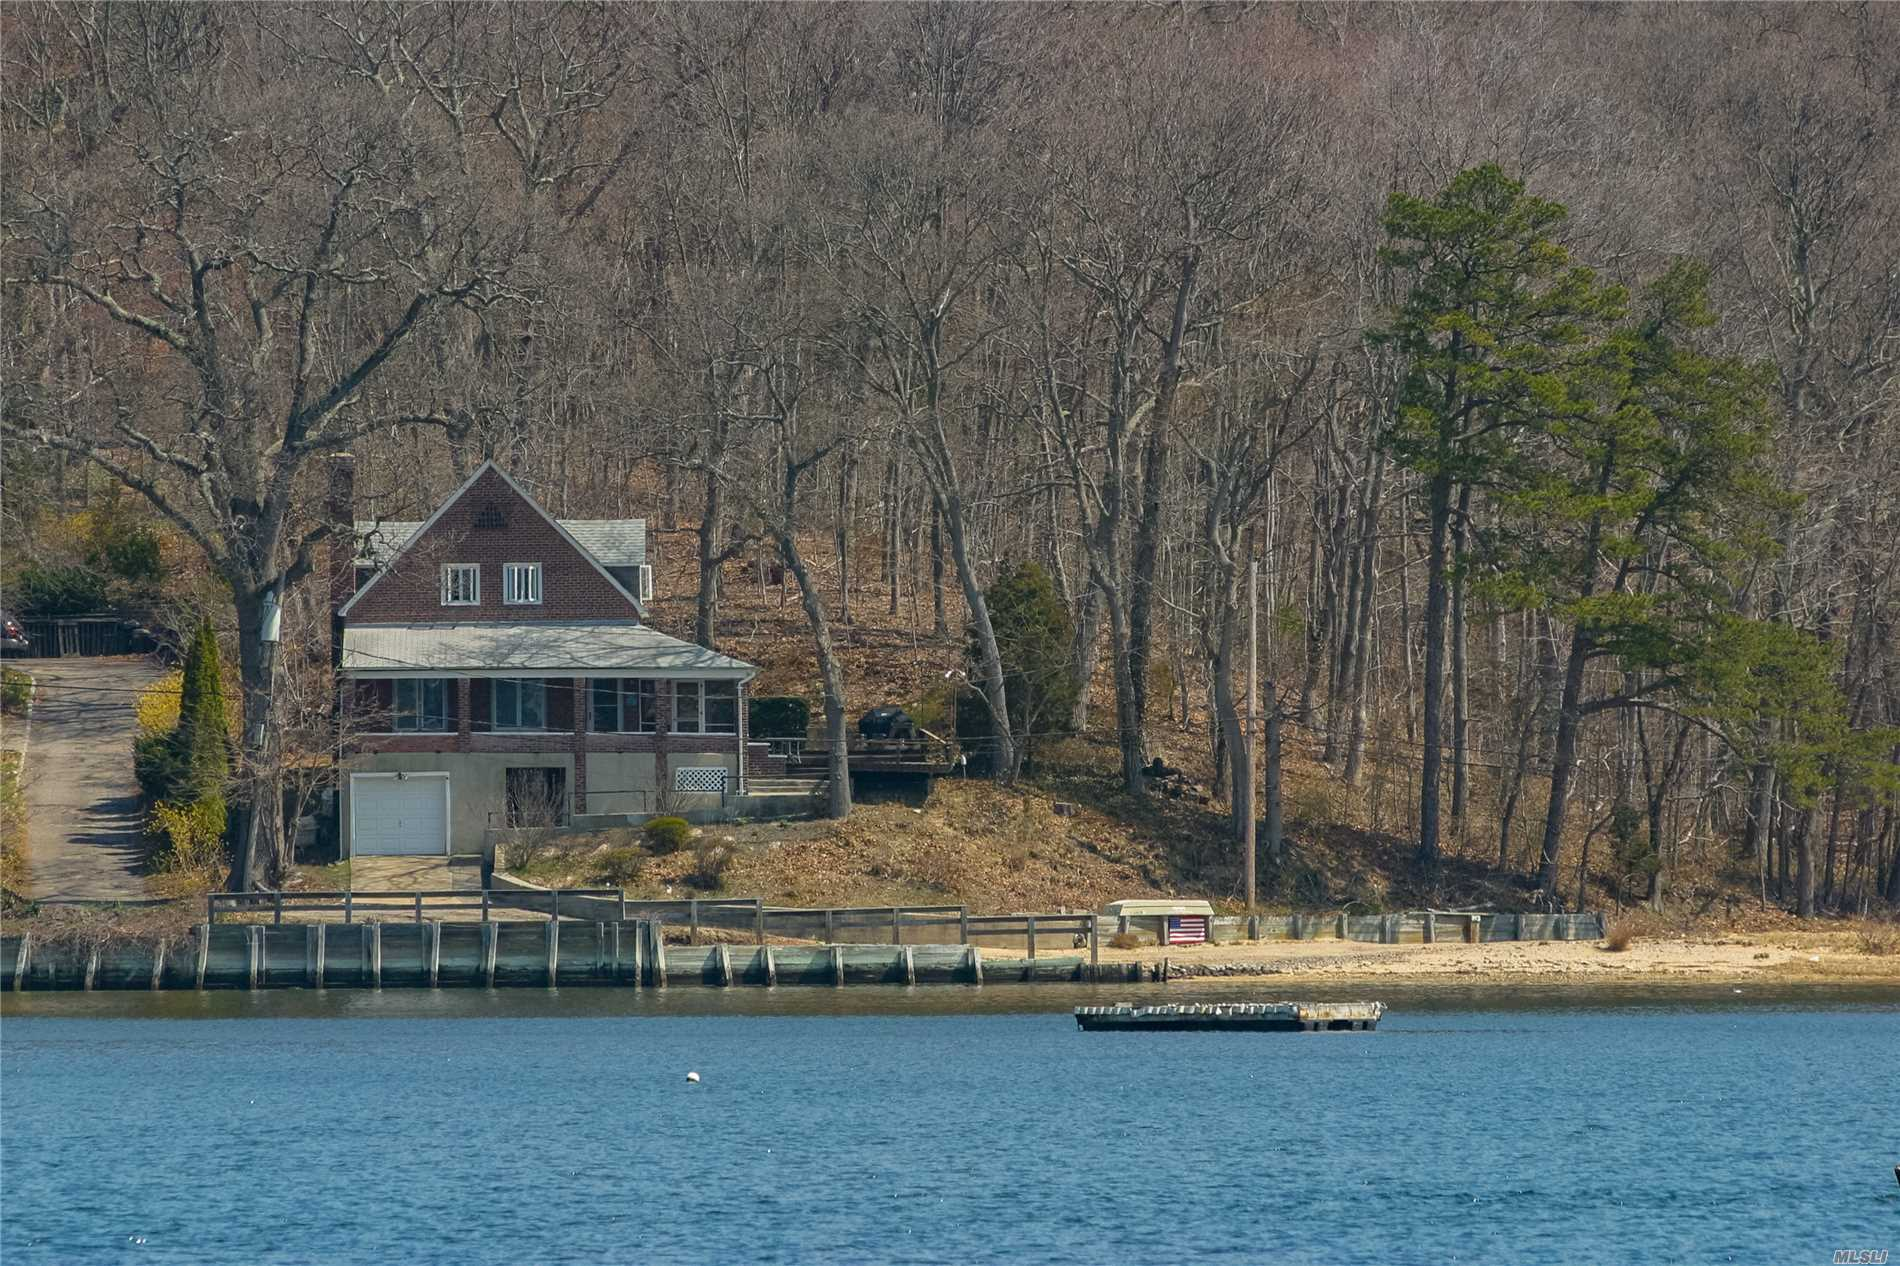 Rare Opportunity To Renovate/Expand/Build New Waterfront Home W/Panoramic Western Waterviews Of Centerport Harbor.  4-Bdrm House W/Well Water- Needs Tlc. Land Is 2 Lots Totaling 1.88 Ac With 280-Ft Of Waterfront And Beach. Not Subdividable.  *** Do Not Drive Thru Pillars At End Of Prospect Rd ***